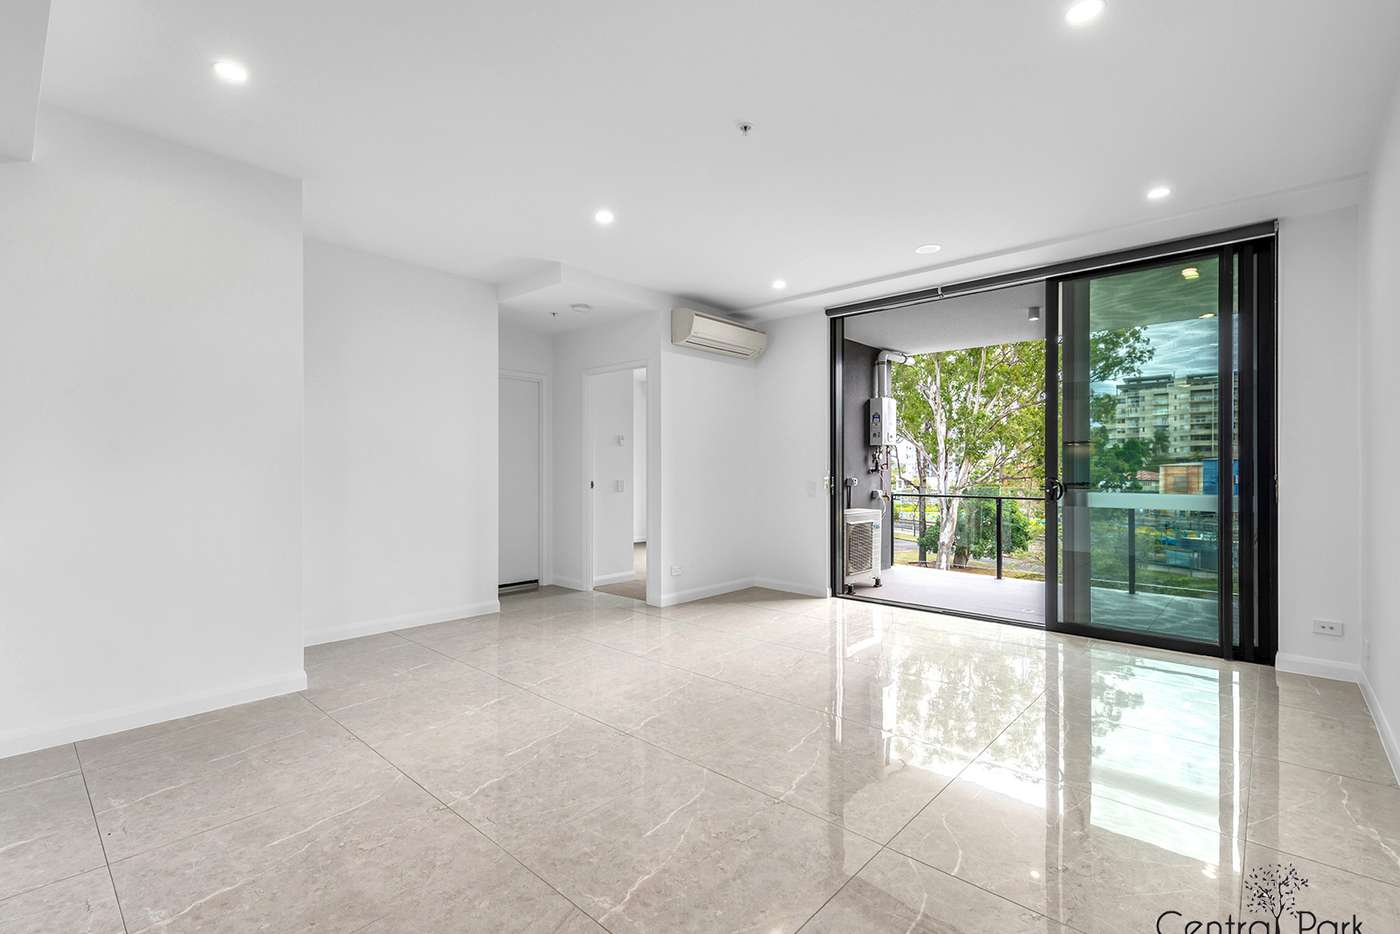 Seventh view of Homely apartment listing, 236/181 Clarence Rd, Indooroopilly QLD 4068